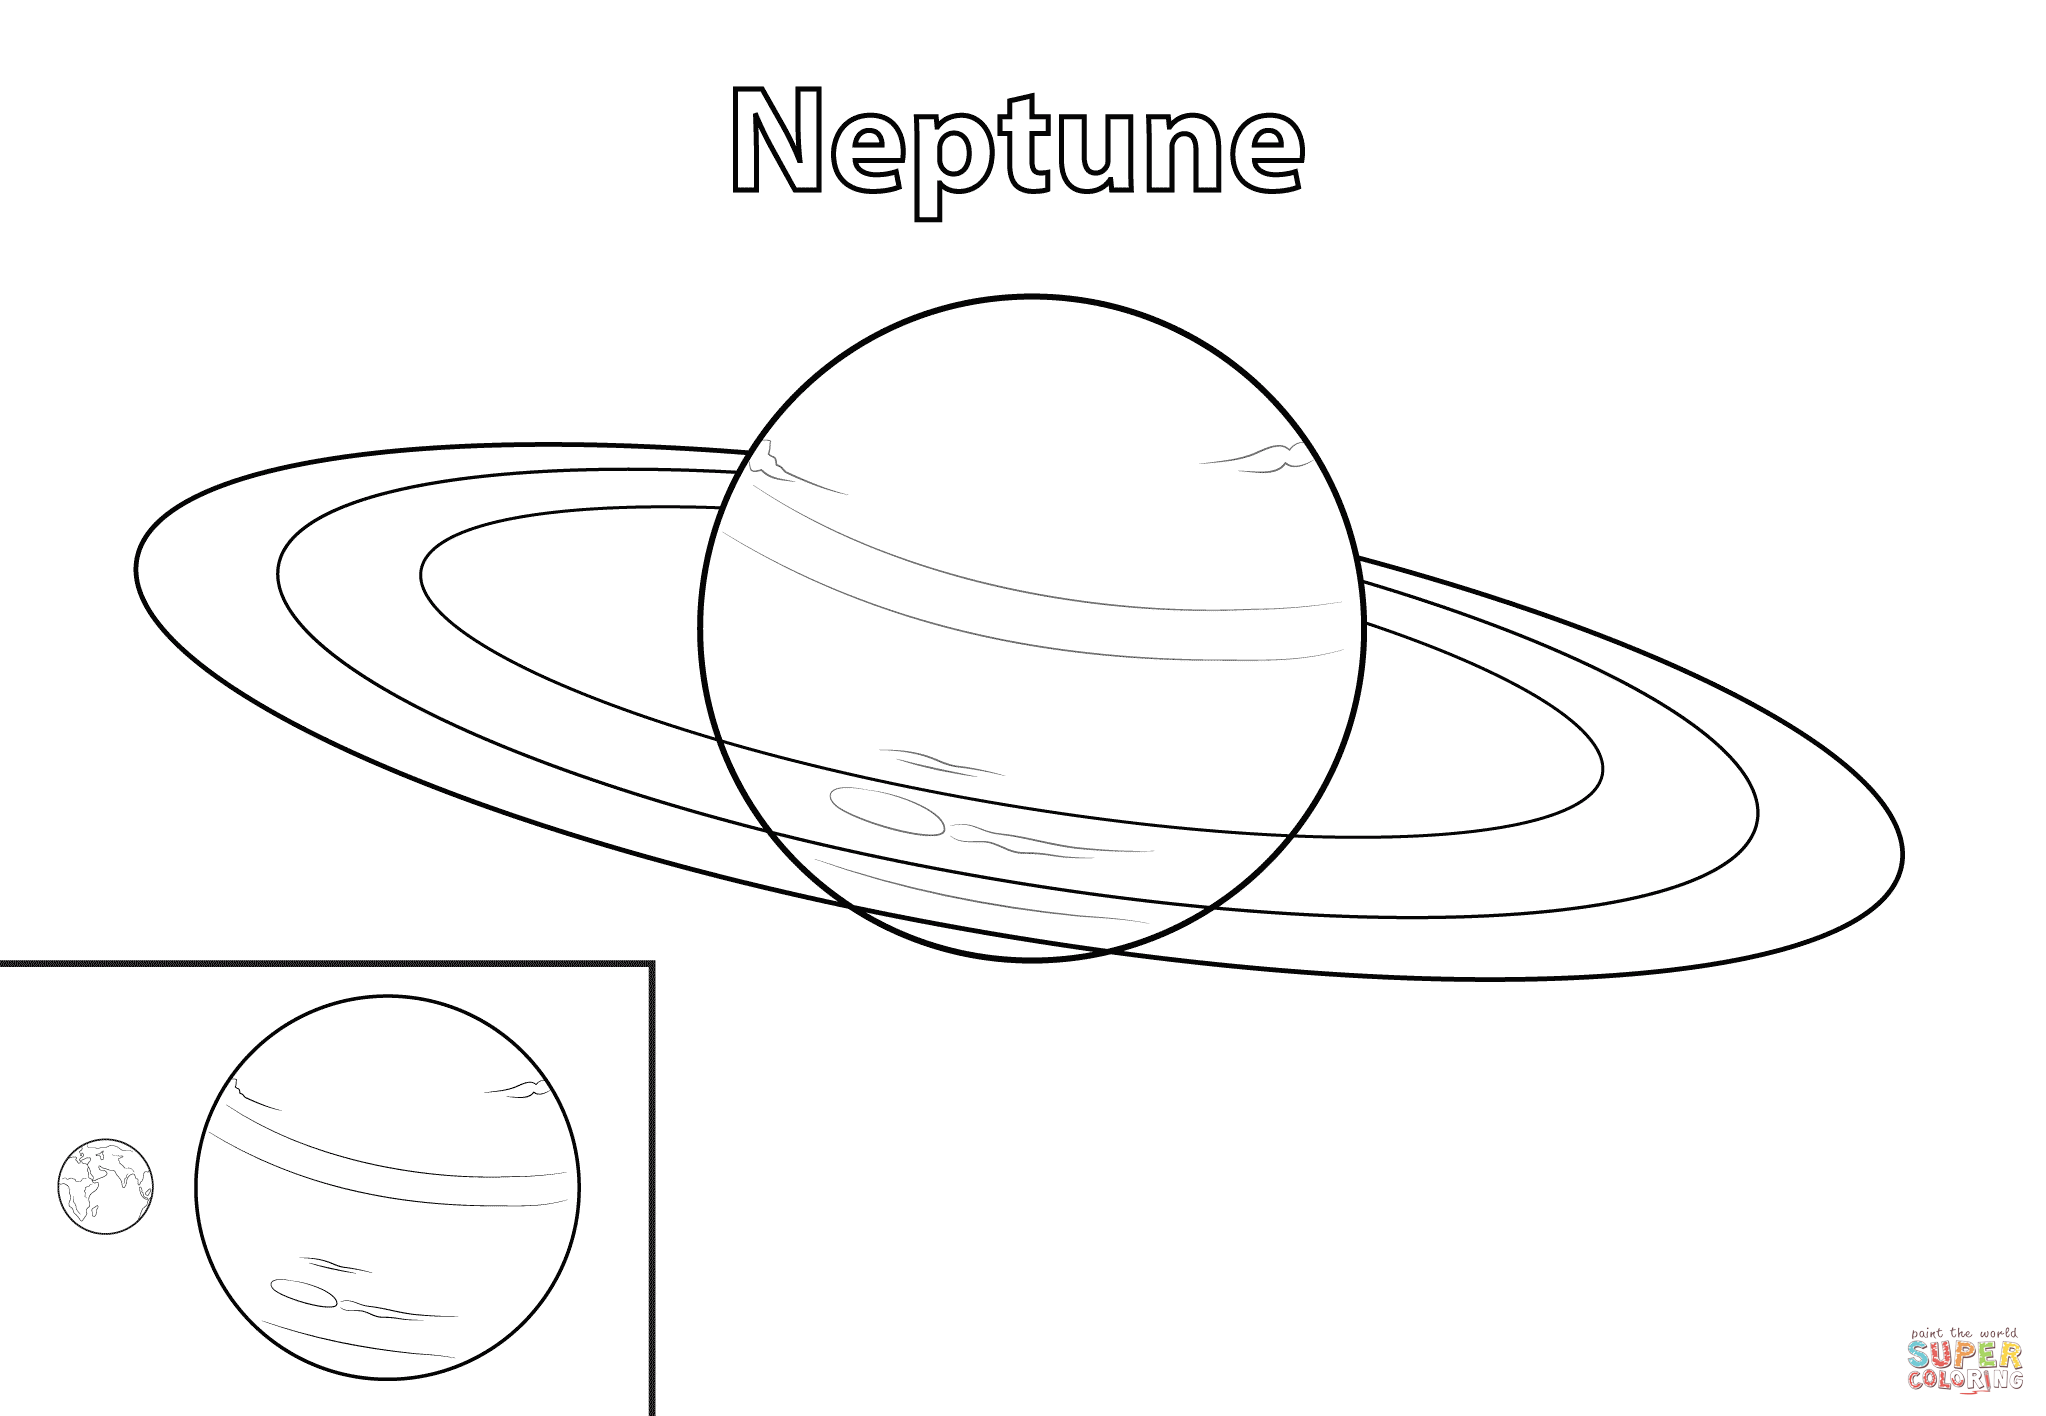 Neptune Planet Coloring Page